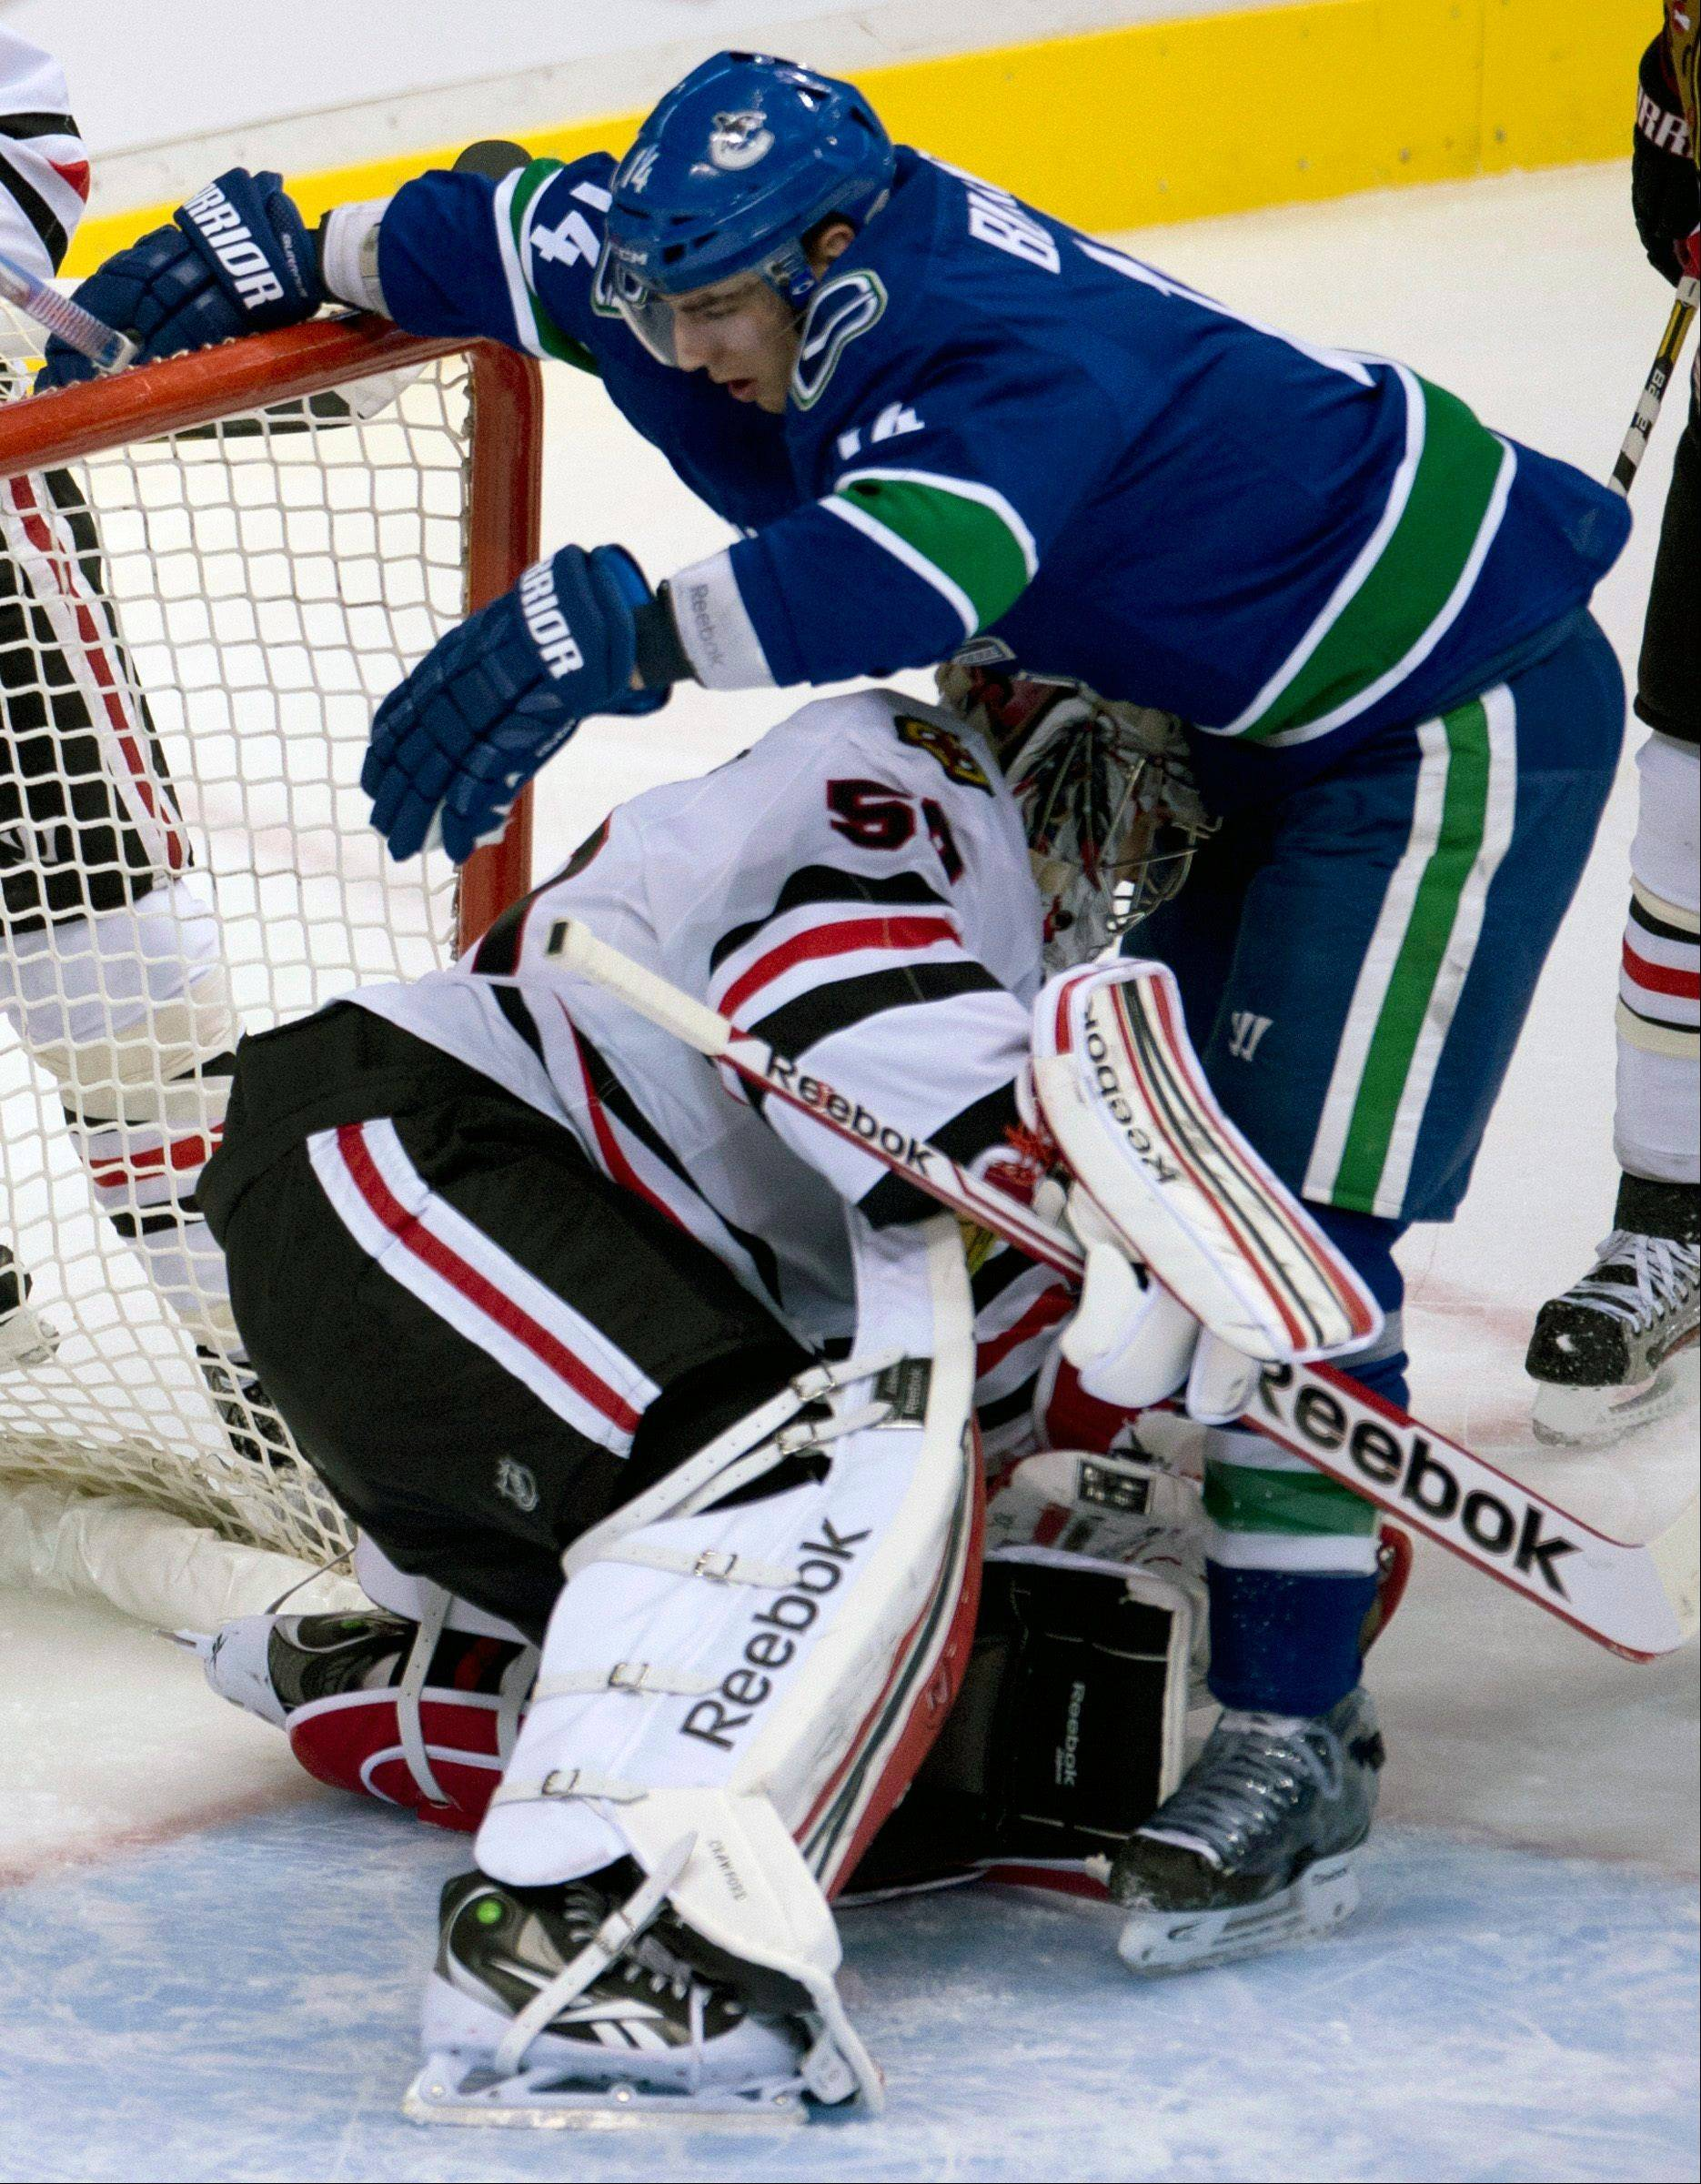 Vancouver Canucks center Alex Burrows (14) collides with Chicago Blackhawks goalie Corey Crawford (50) during the first period of an NHL hockey game in Vancouver, B.C. on Monday, April 22, 2013.